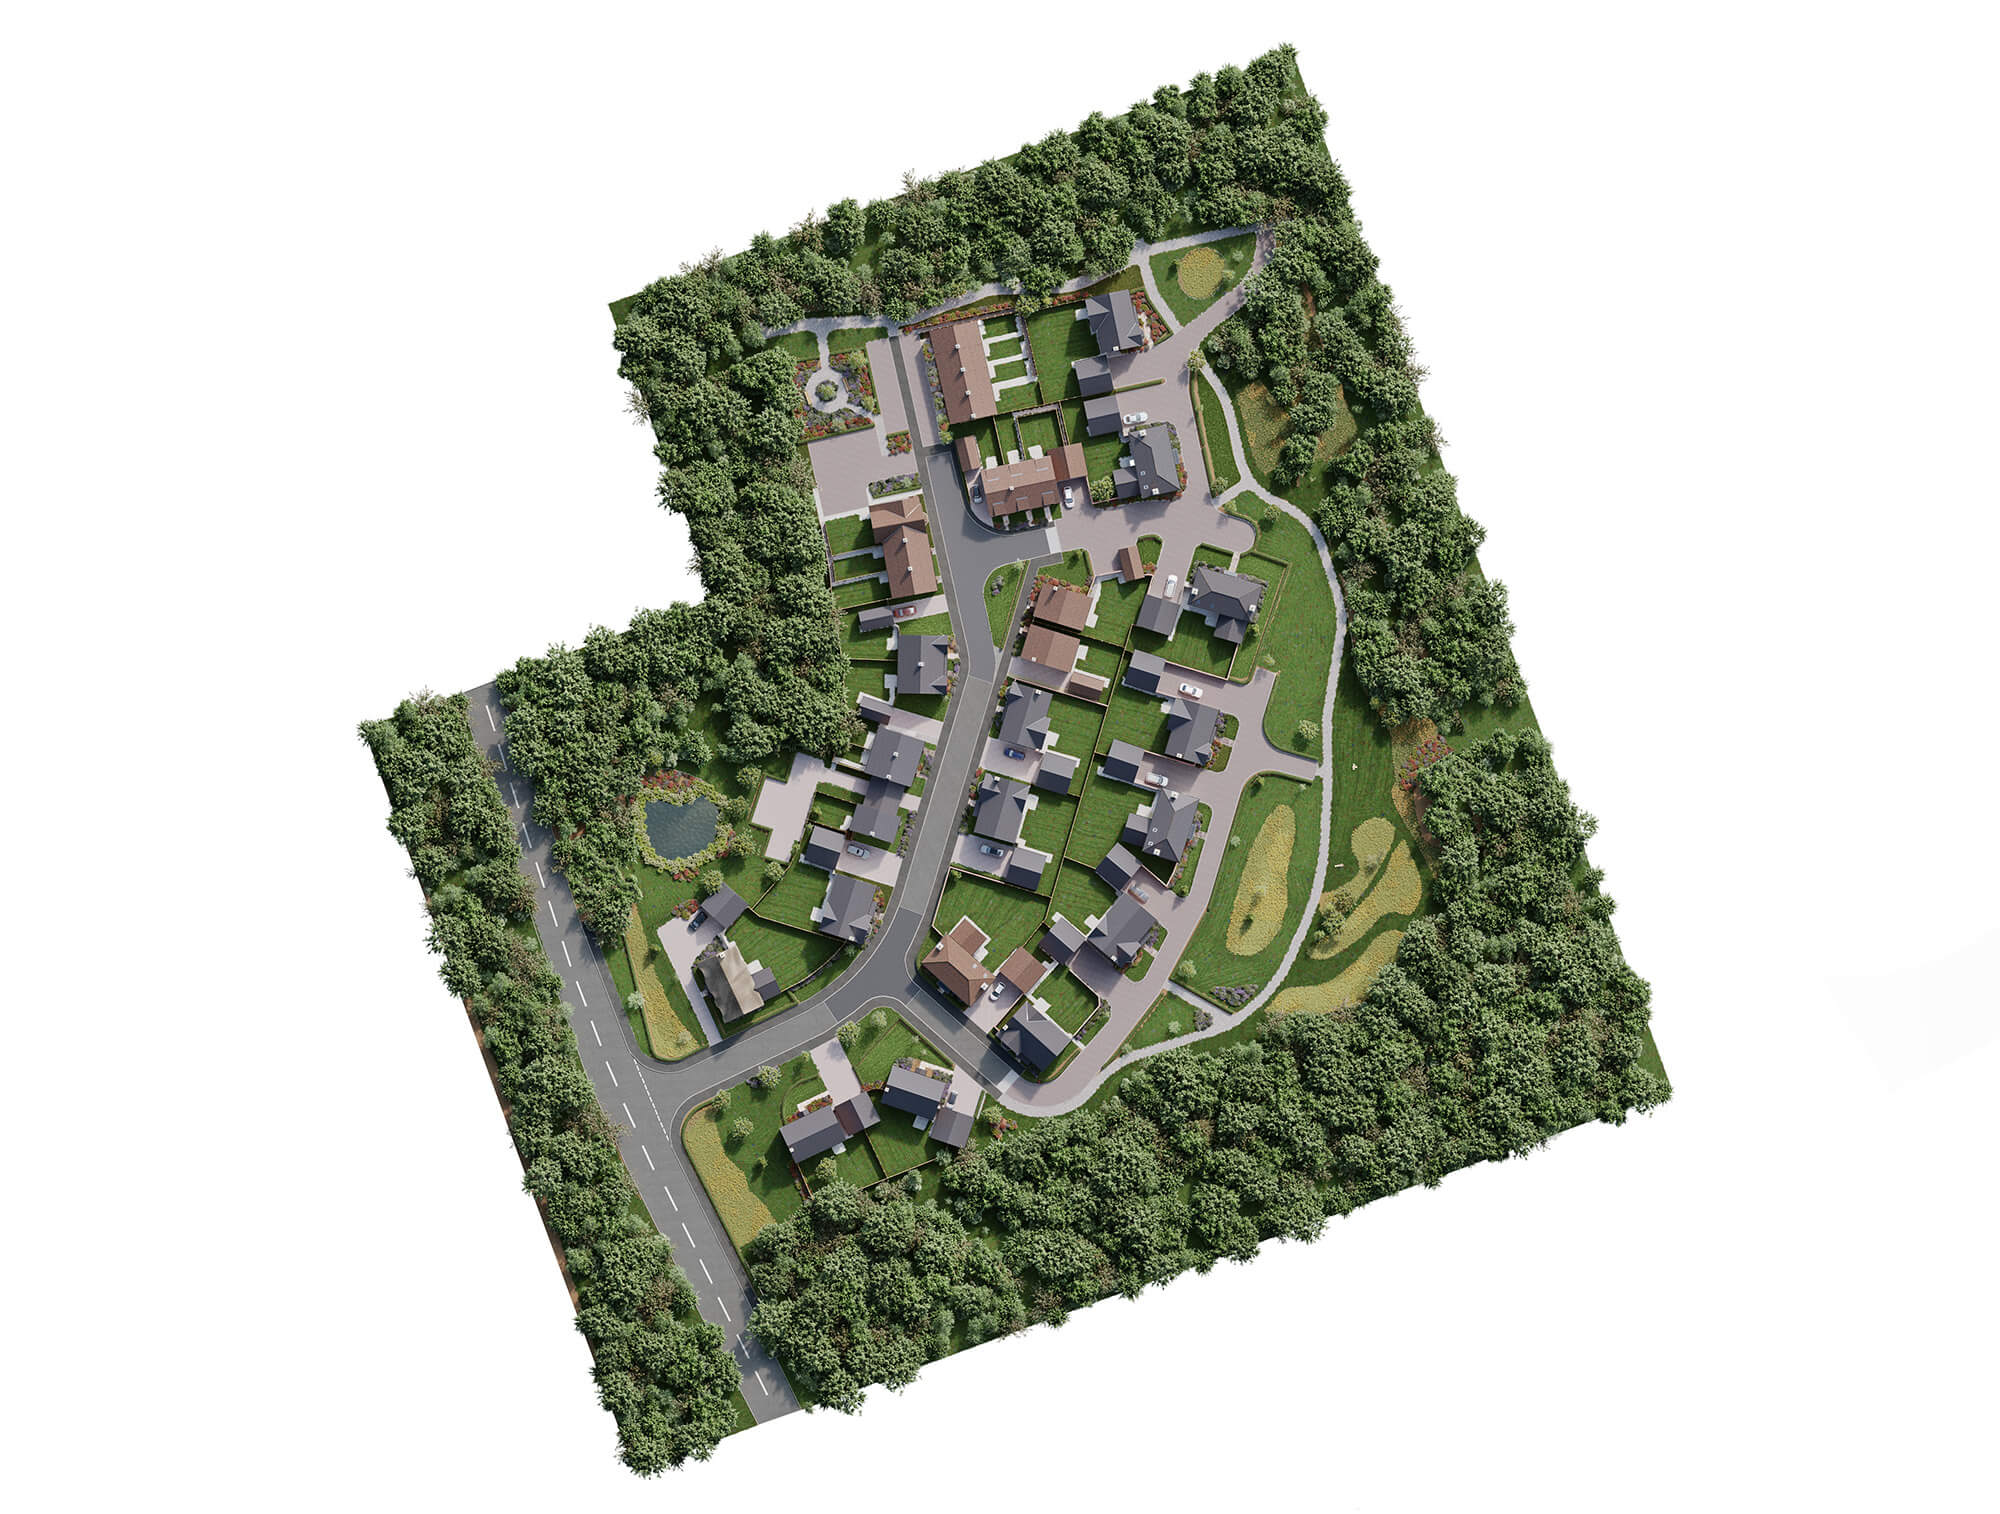 WHITE CROW STUDIOS - SPITFIRE HOMES - BANBURY LANE - AERIAL CGI